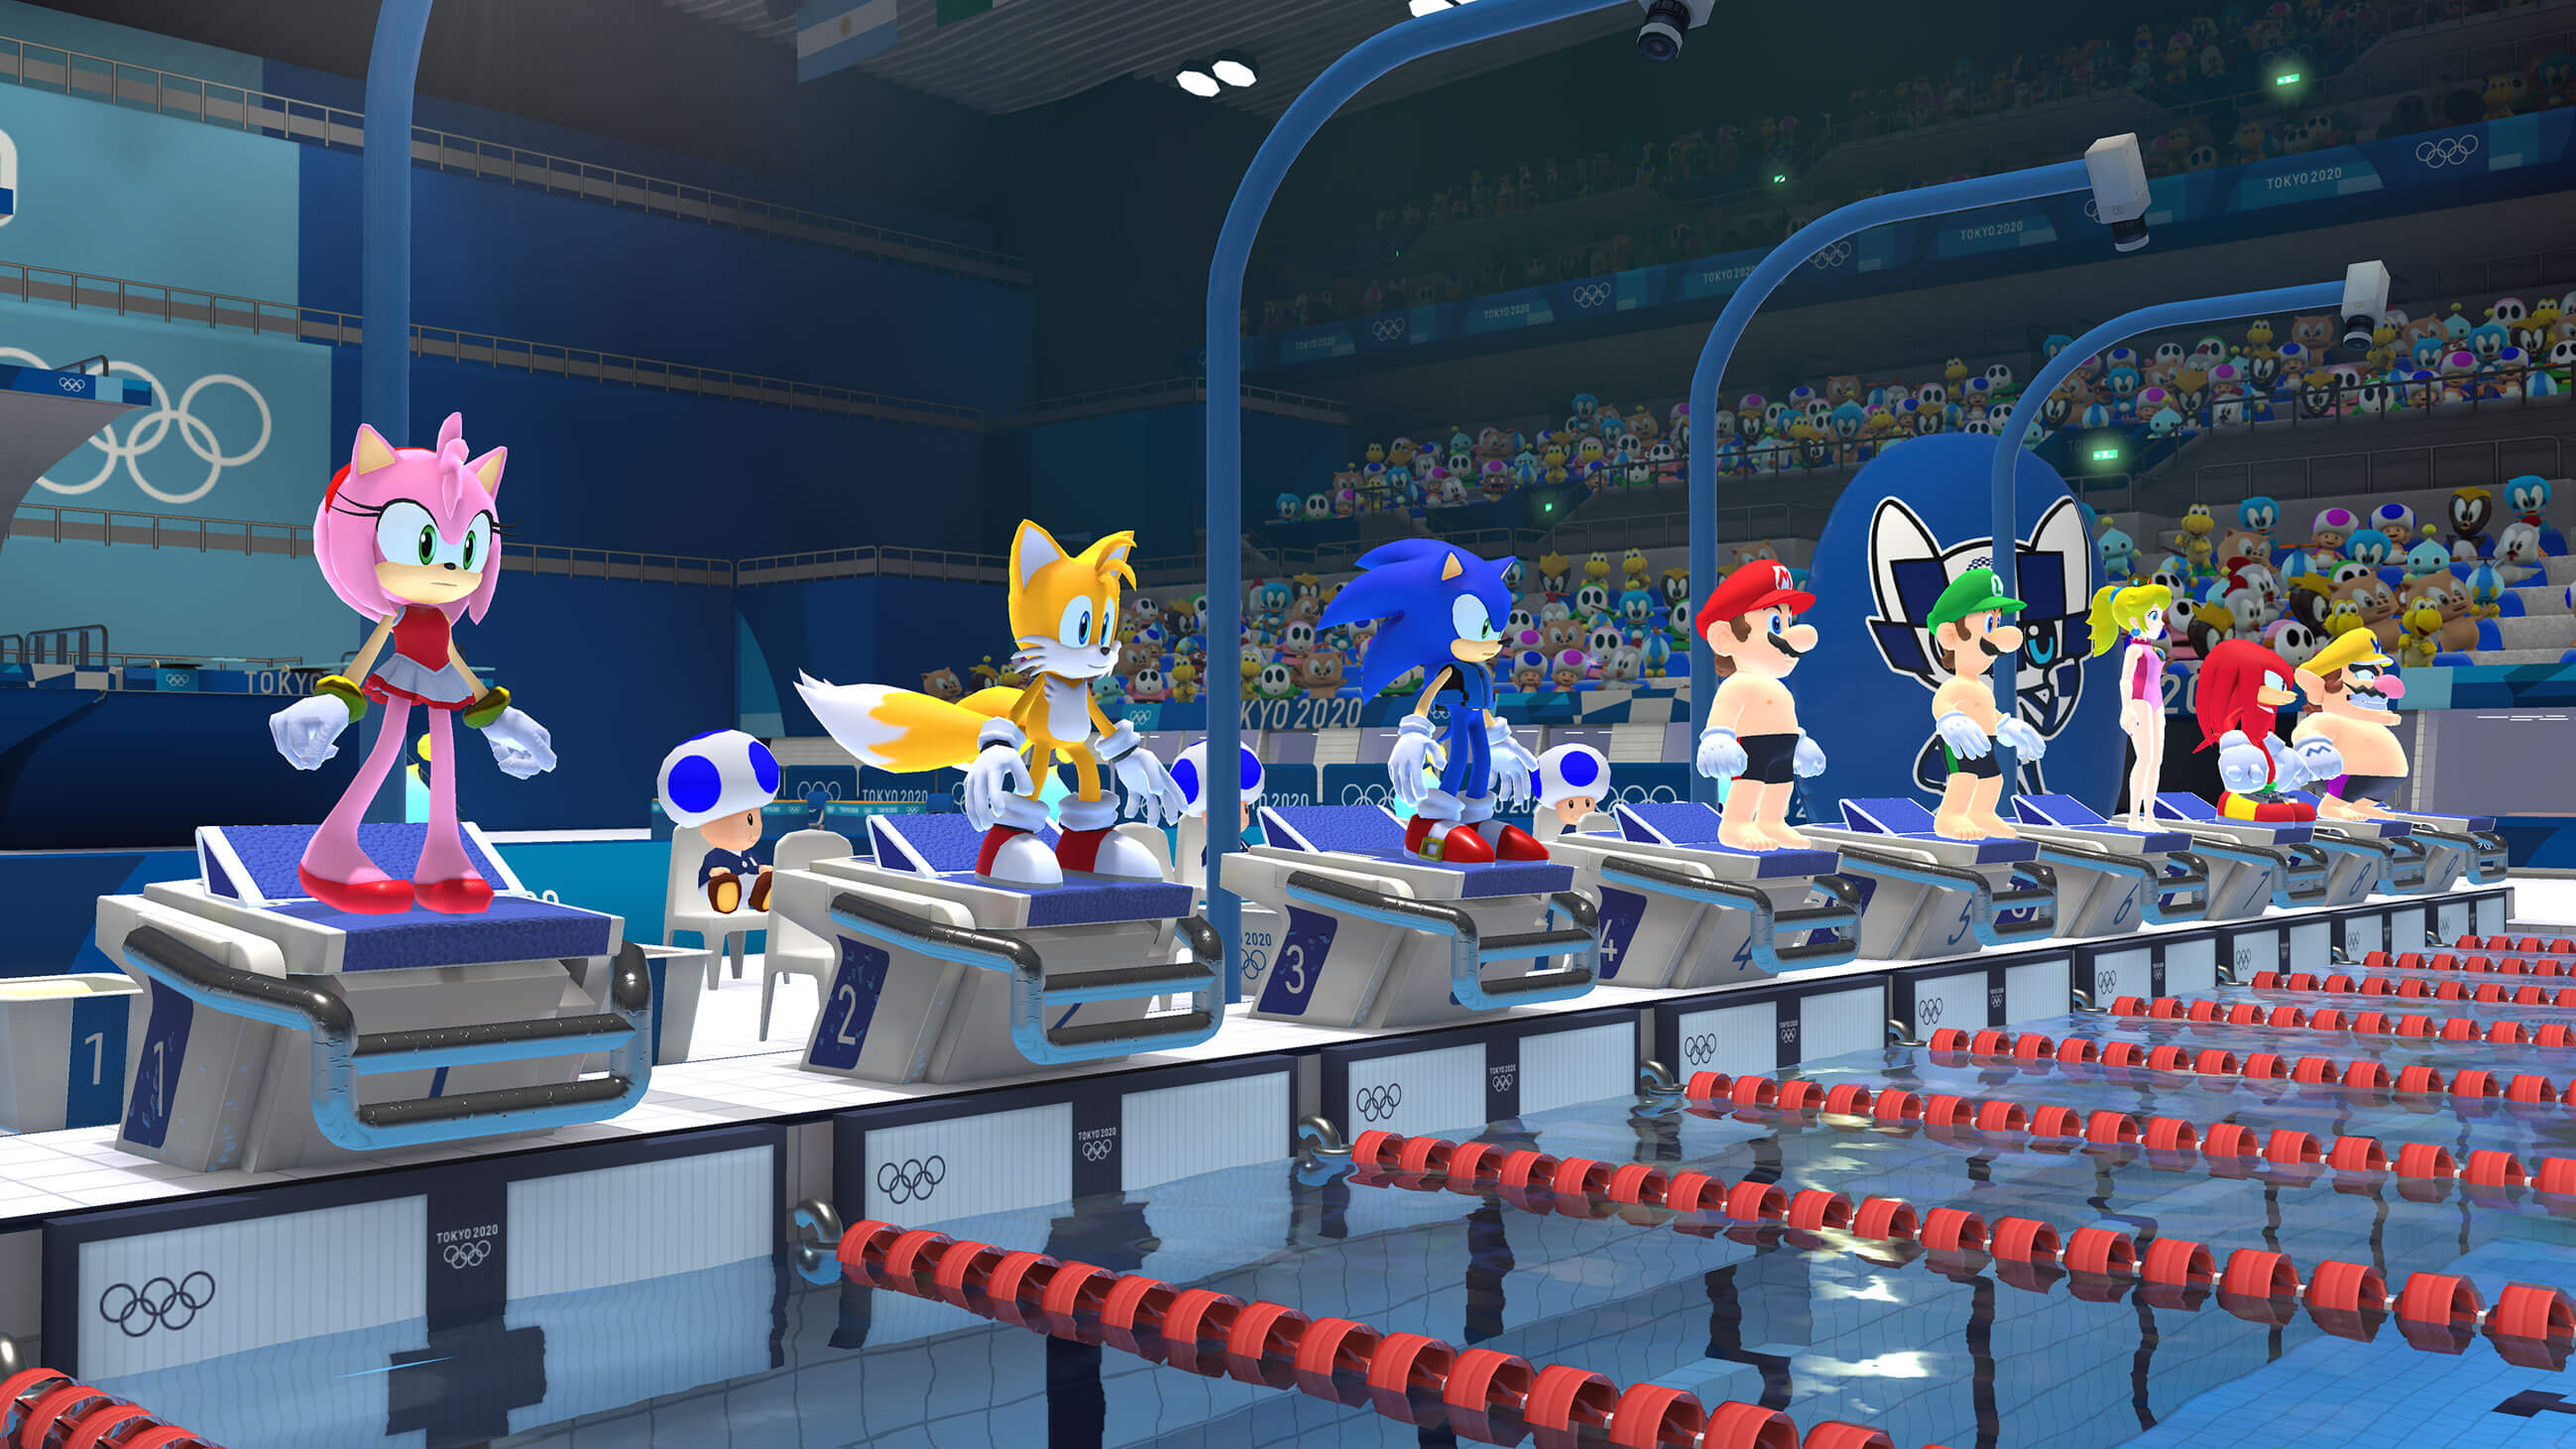 Mario And Sonic 2020 Winter Olympics.Mario And Sonic At The Olympic Games Tokyo 2020